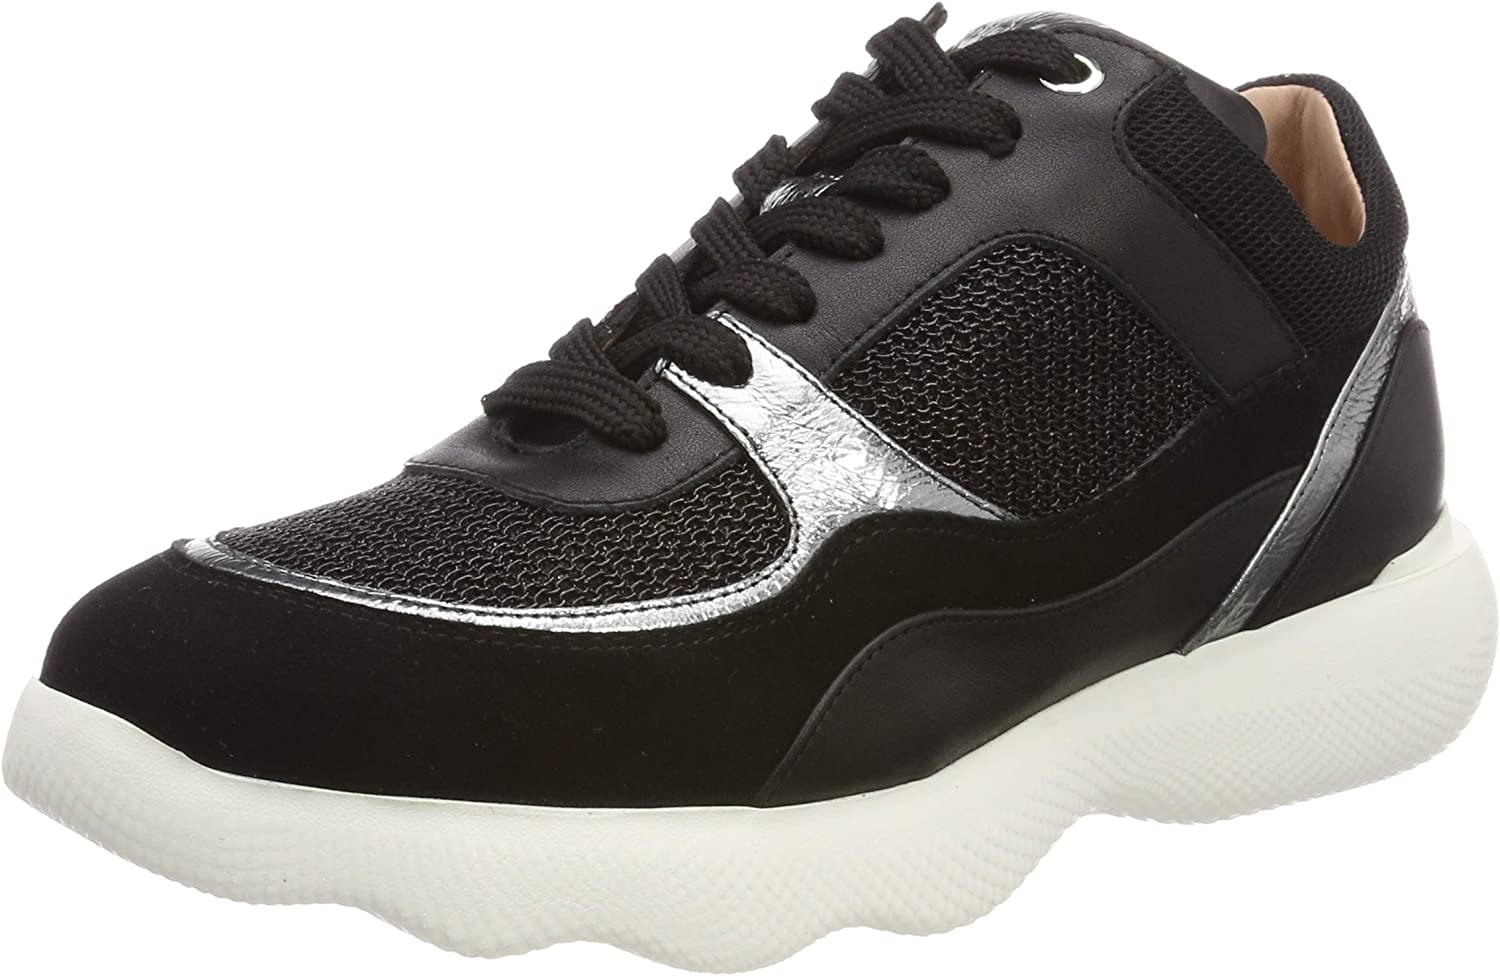 Unisa Women's Eire_ks_lw Low-Top Sneakers